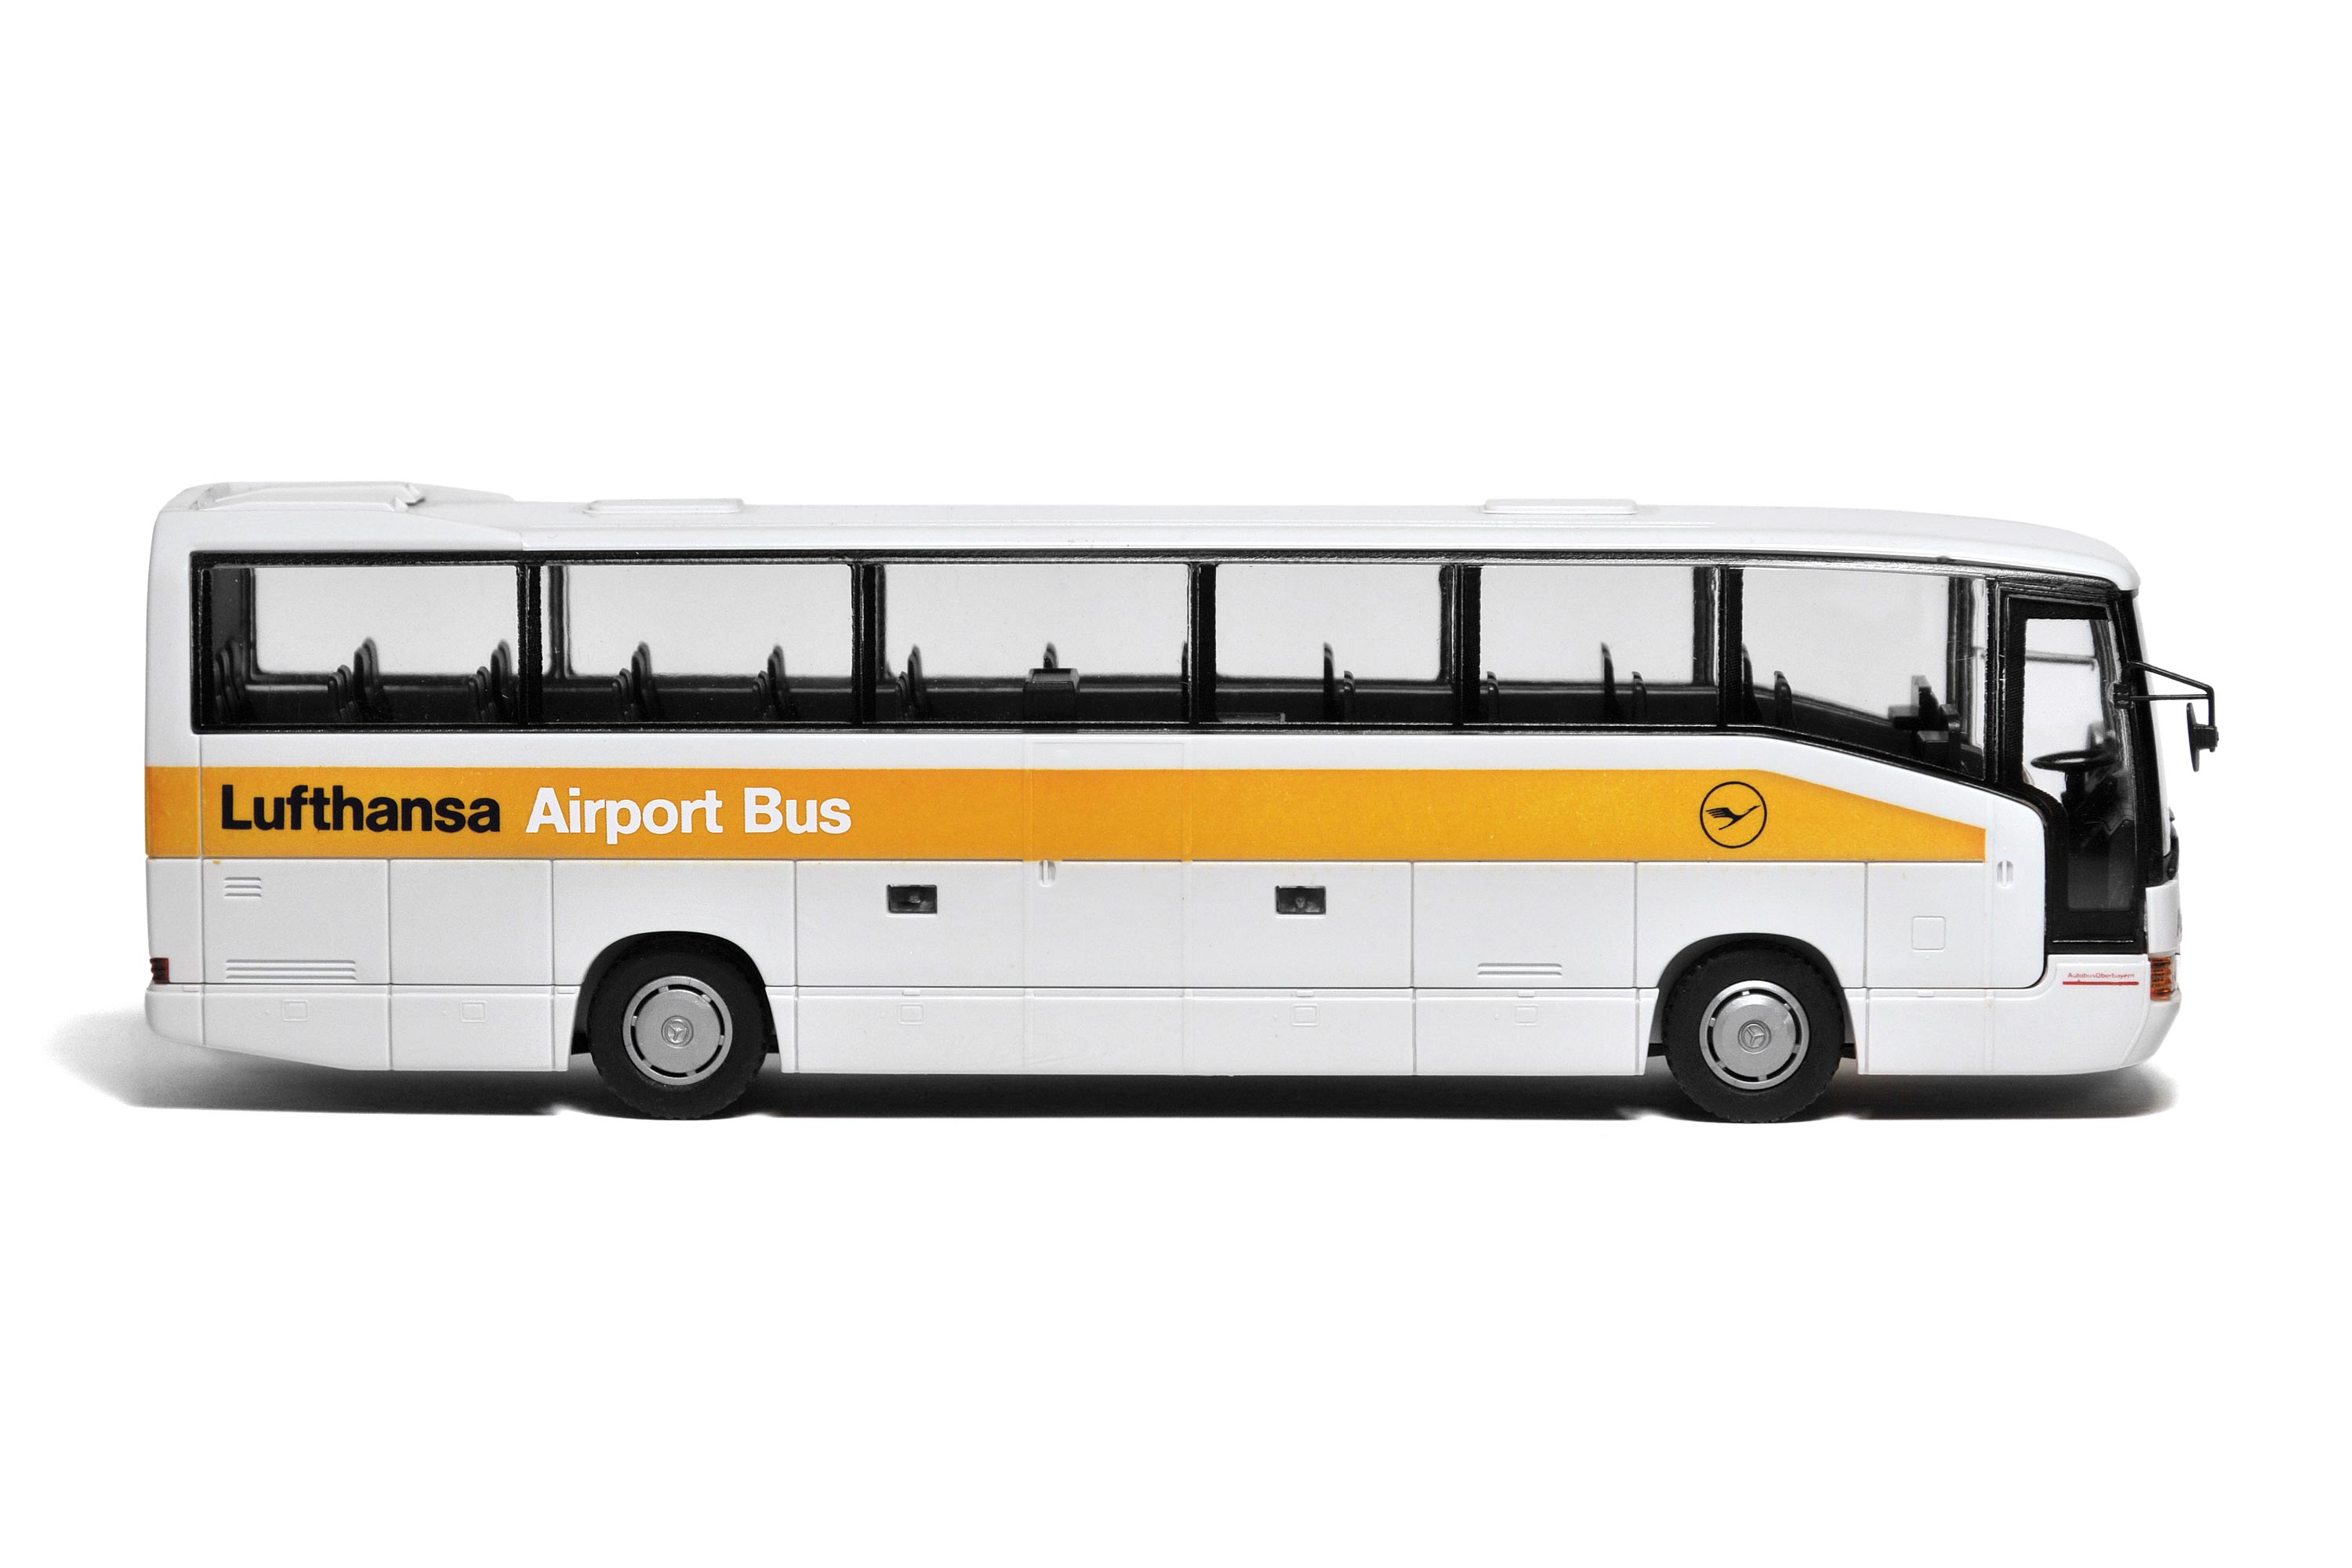 buss and buss At buss, each staff member is carefully selected to ensure customer service and satisfaction are key priorities for the numerous services we offer.